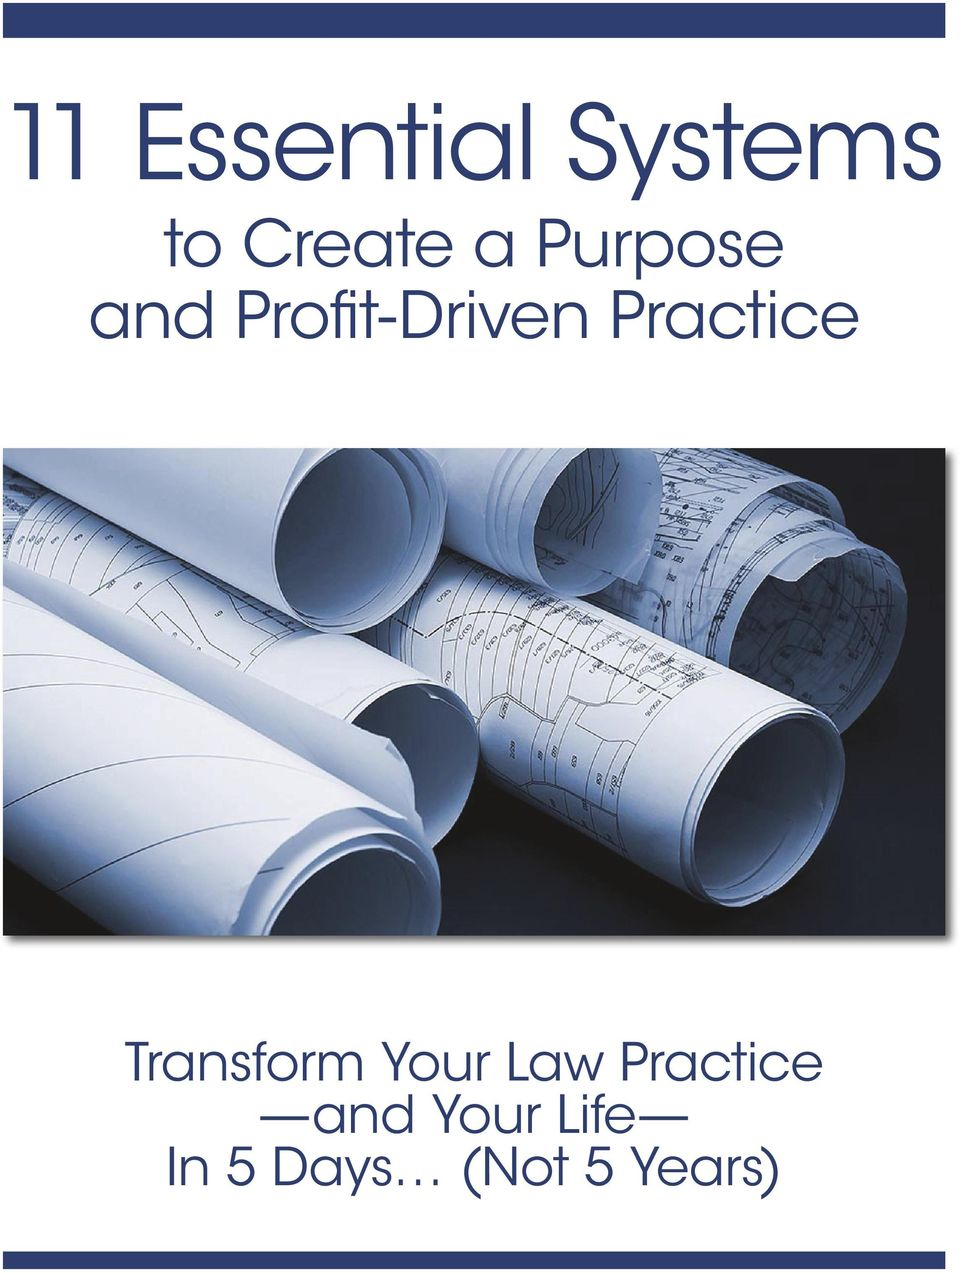 Practice Transform Your Law